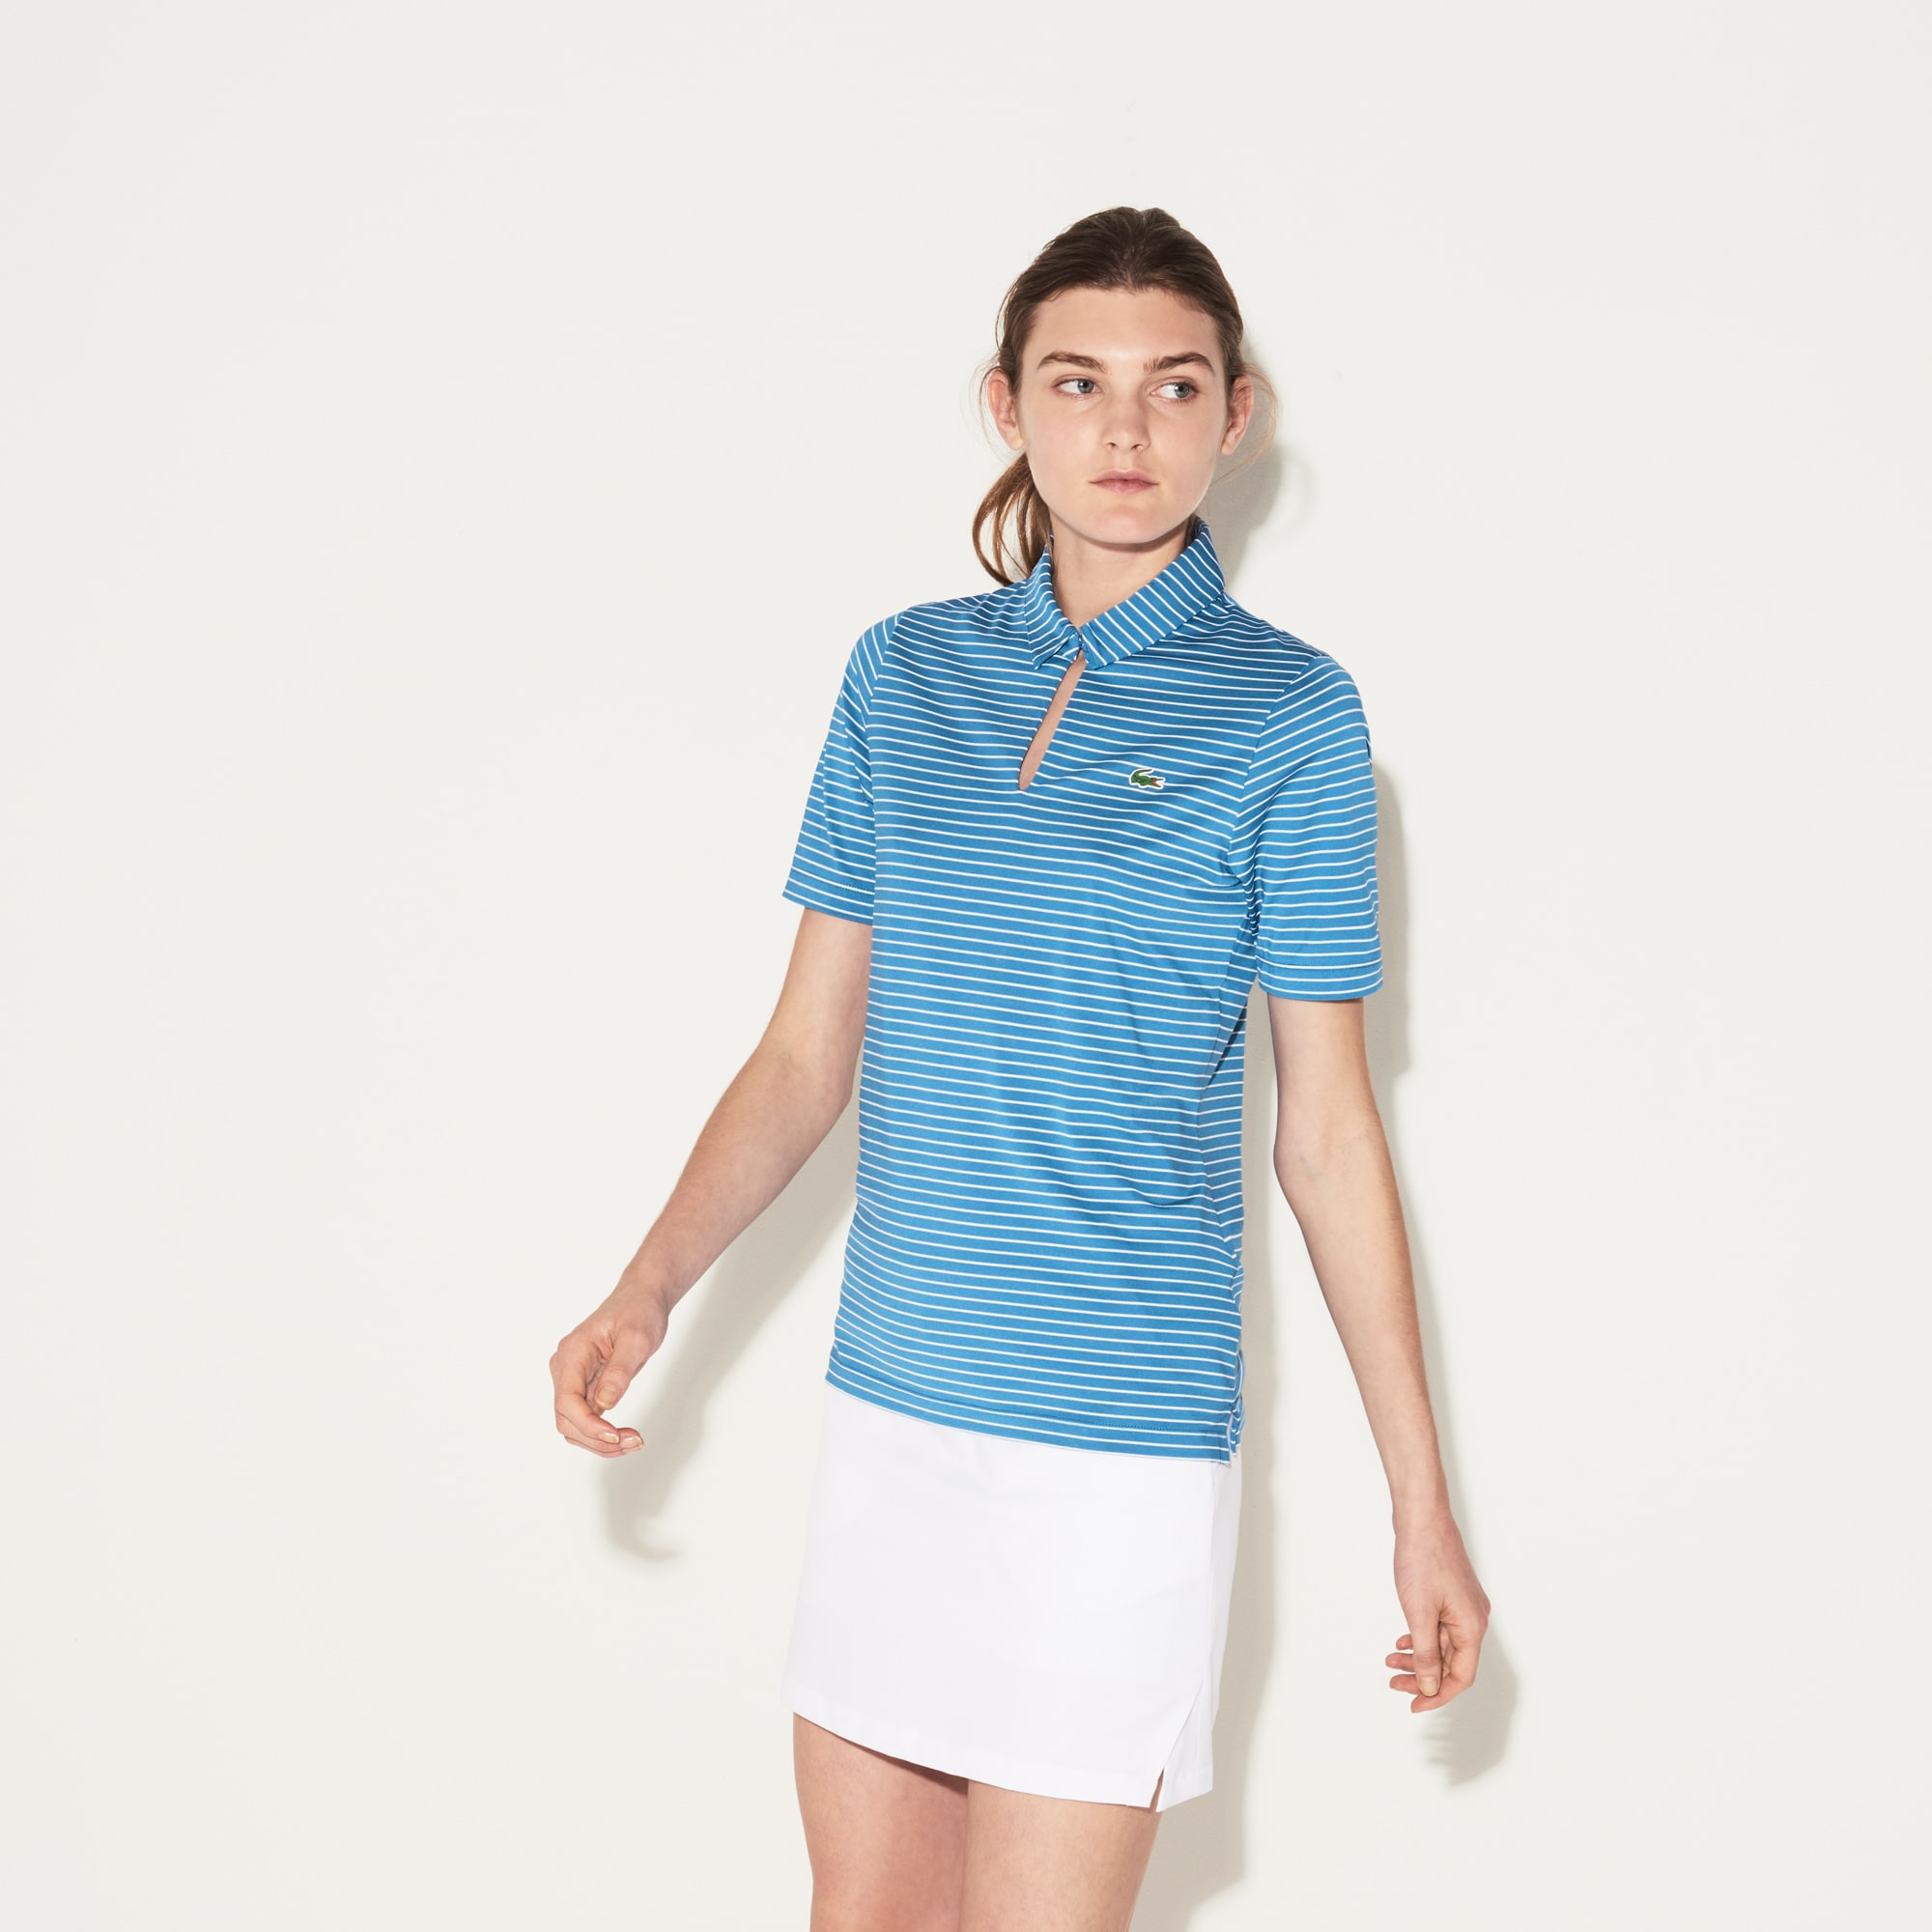 Women's Lacoste SPORT Teardrop Neck Striped Jersey Golf Polo Shirt